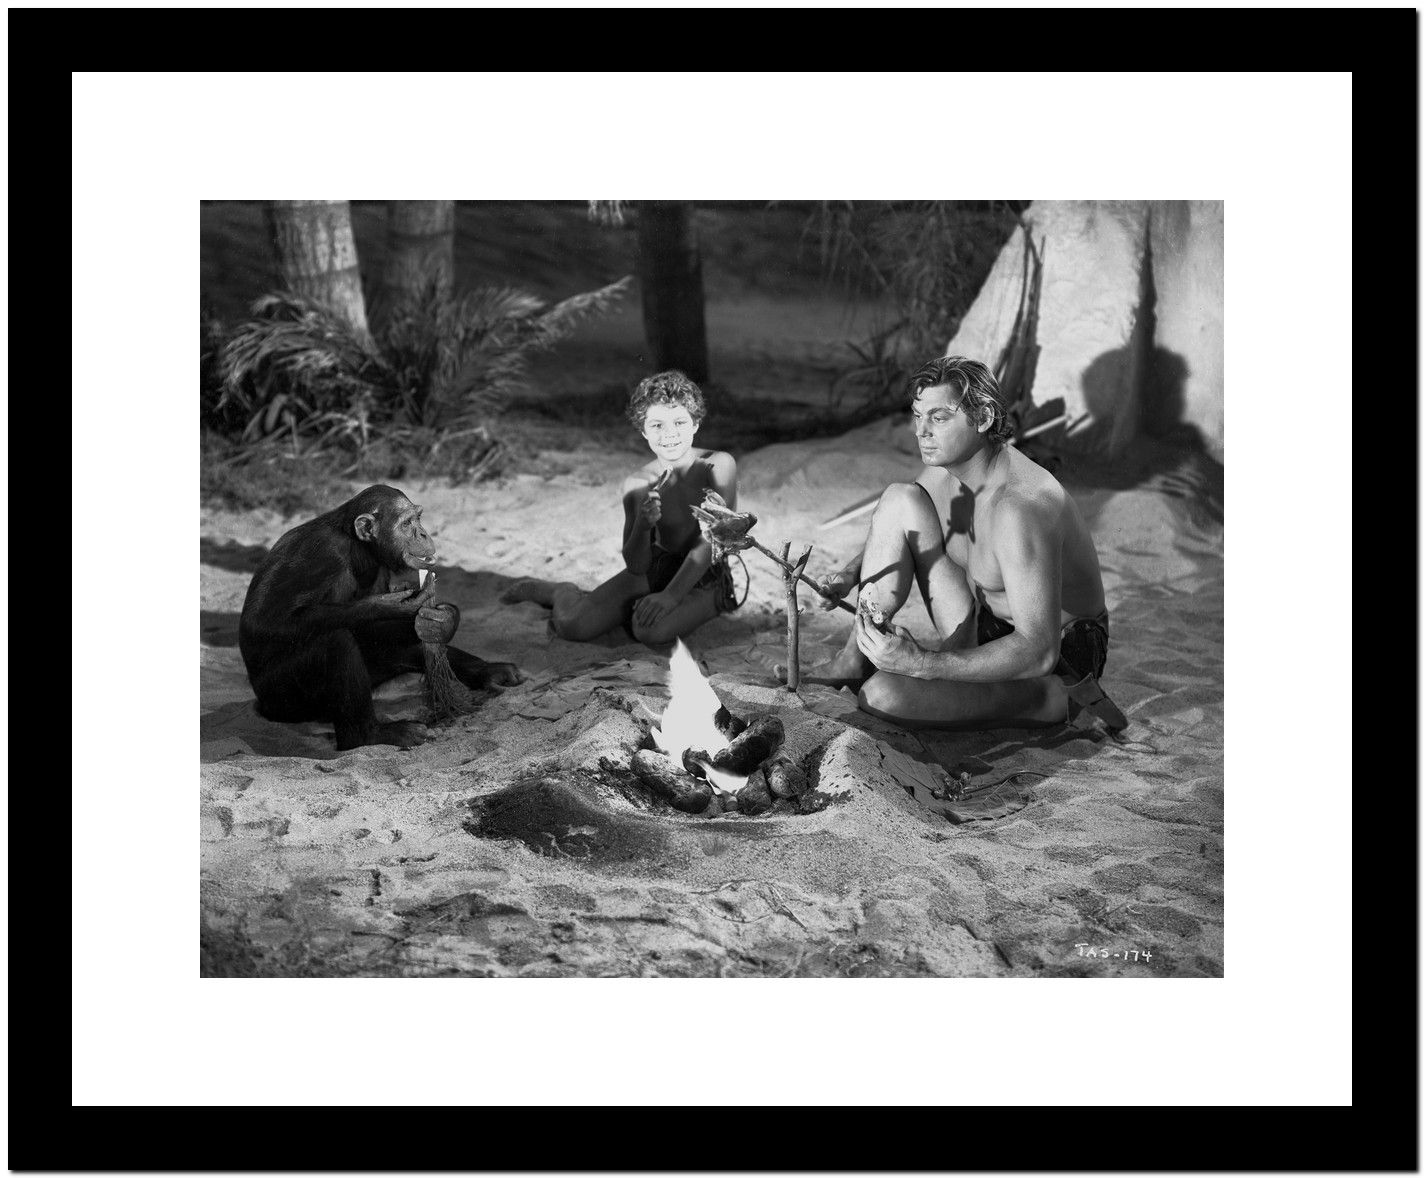 Johnny Weissmuller Grilling Their Food in a Classic Movie Scene Premium Art Print